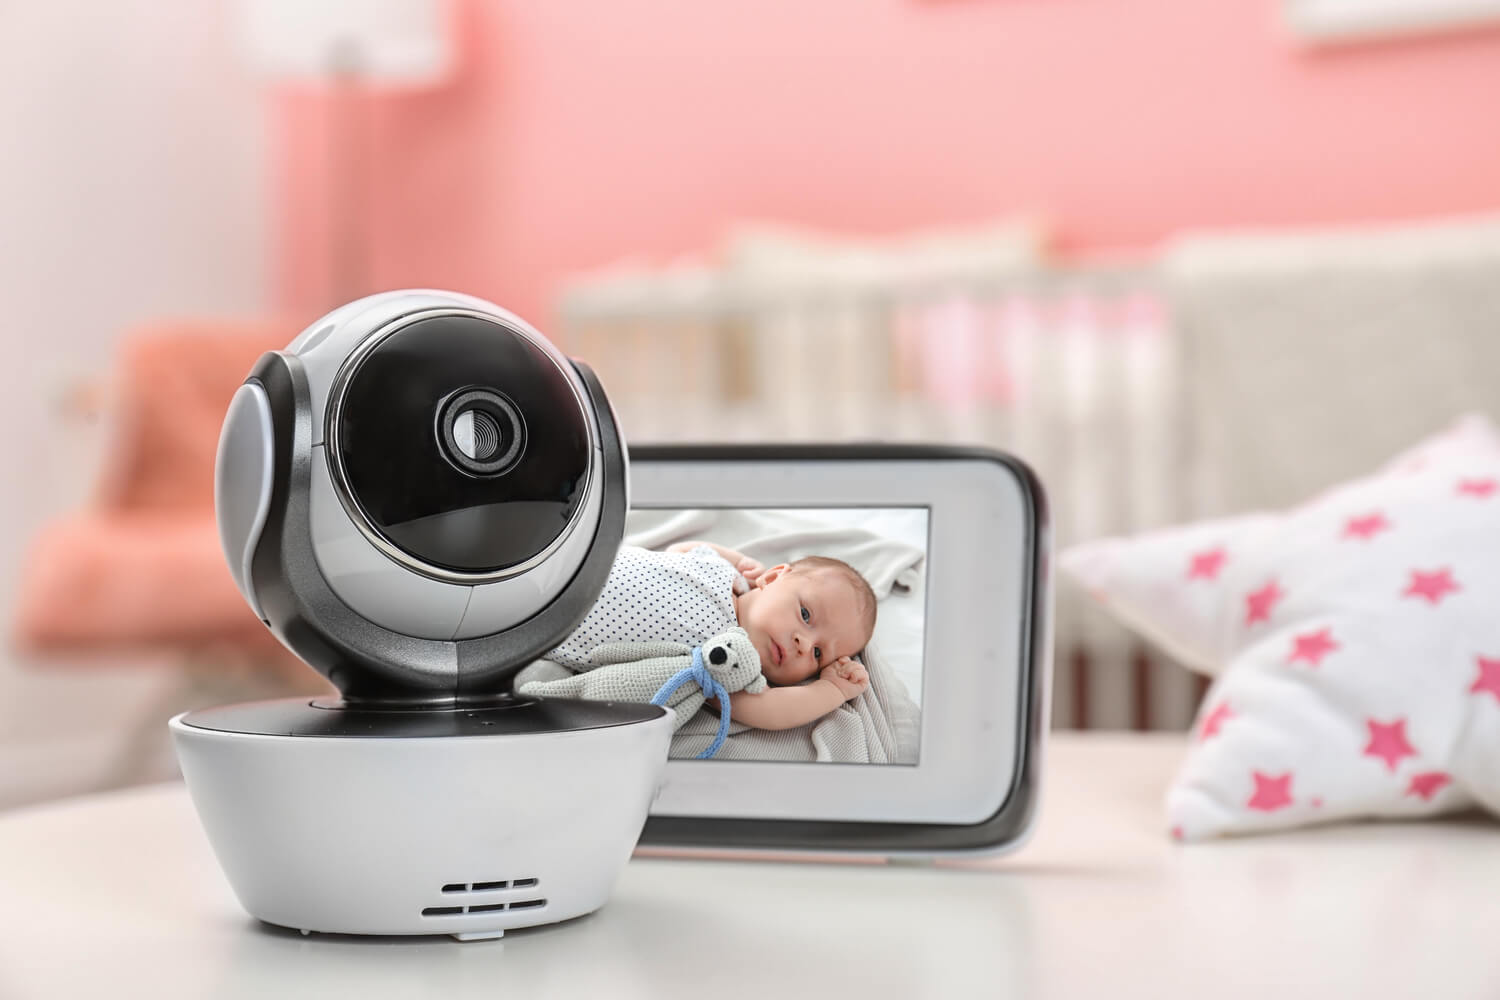 Baby Monitor Guide- How To Buy the Best Monitor